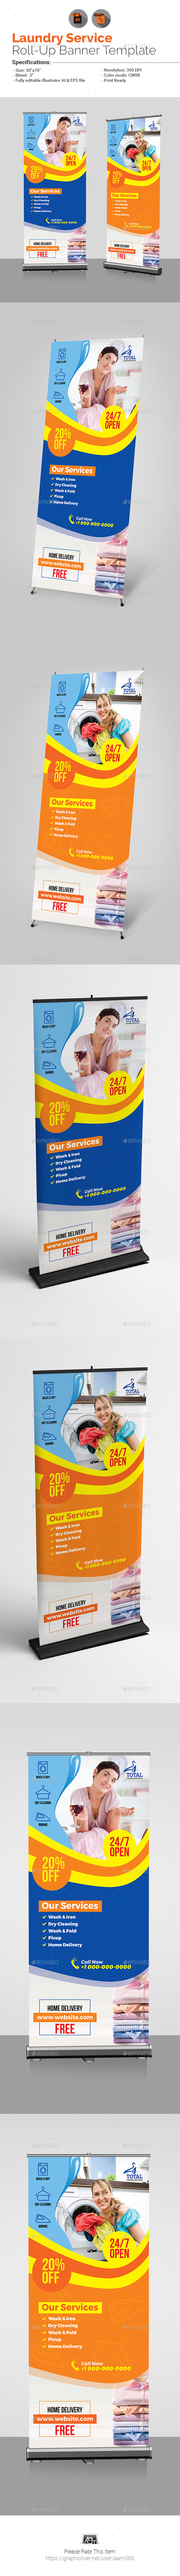 Laundry Services Roll-Up Template - Signage Print Templates